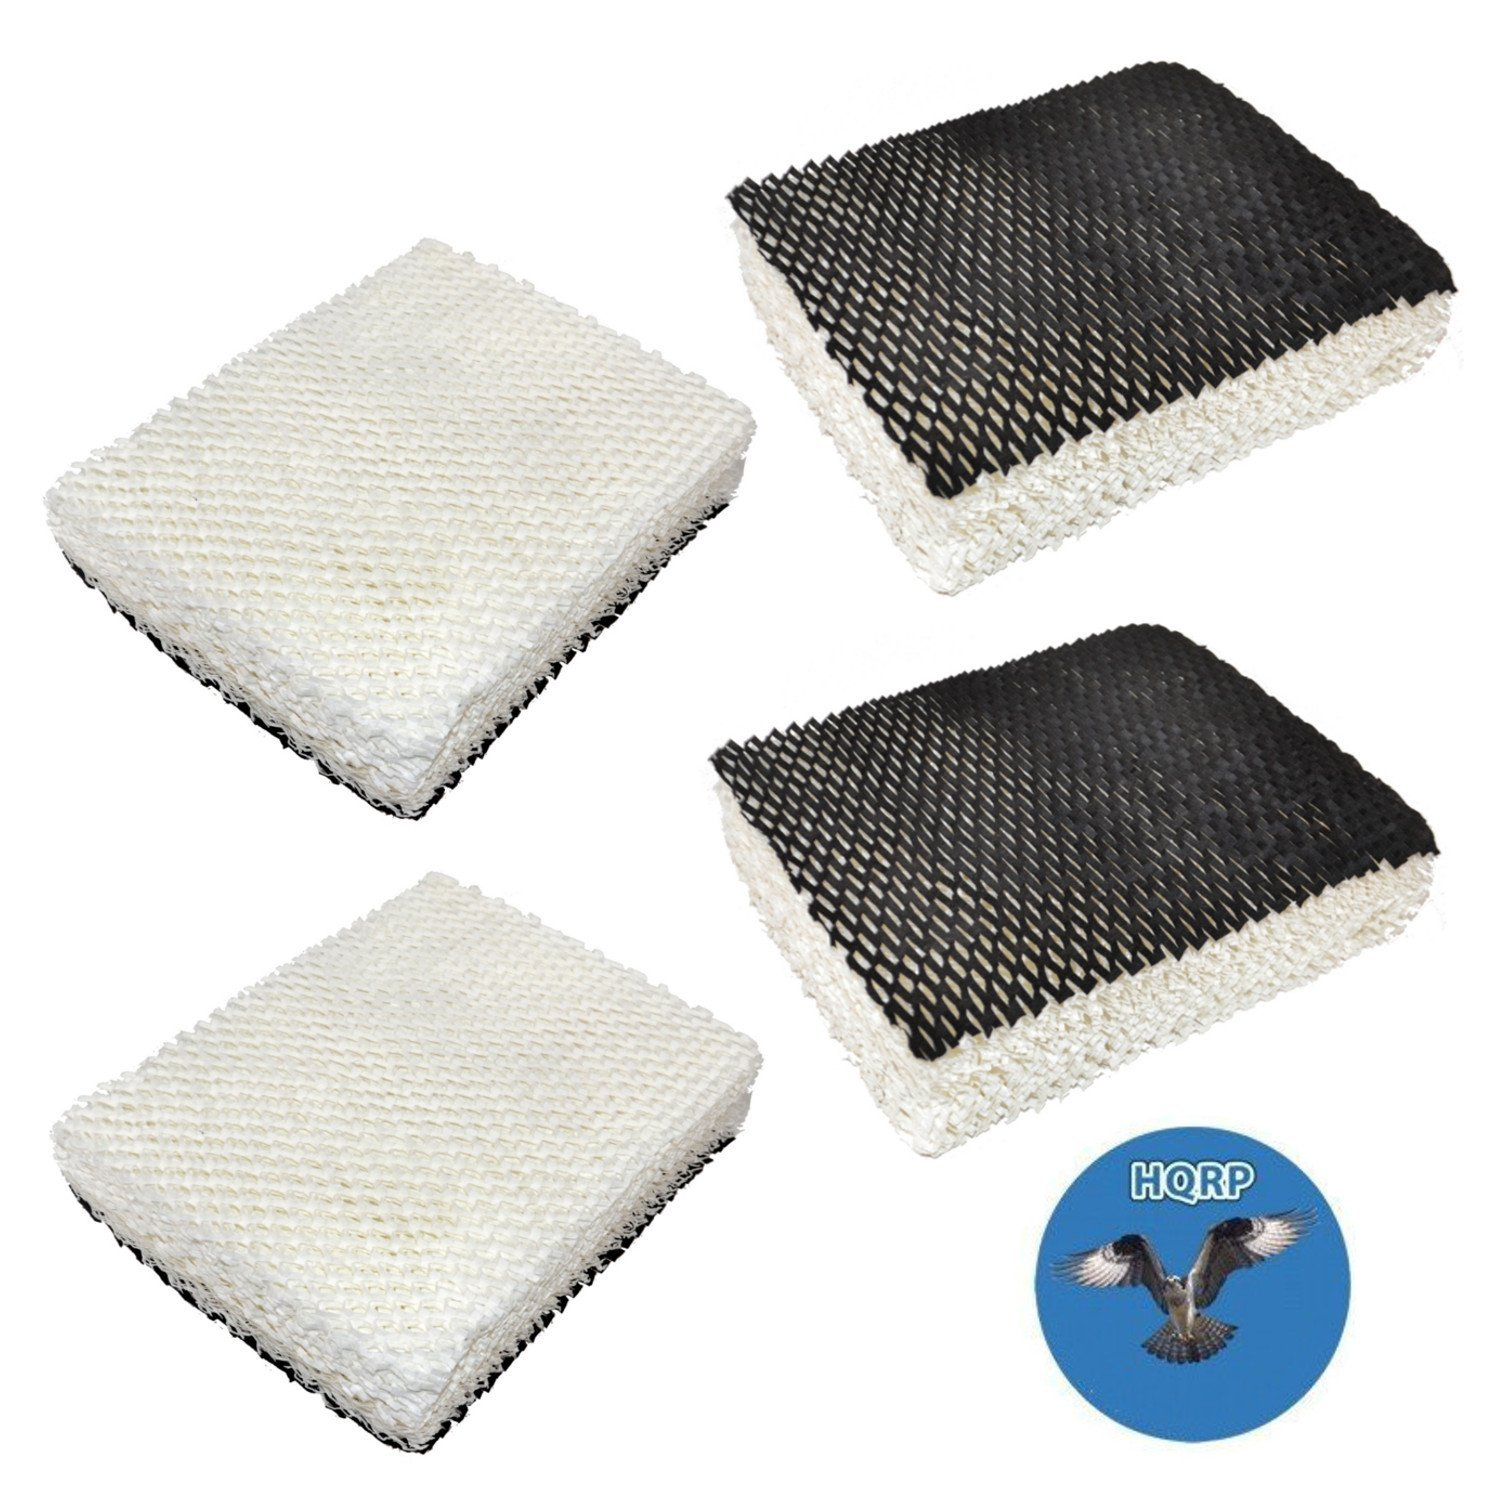 HQRP 4-pack Humidifier Wick Filter for Bionaire WH2510, WH2530, WH3060, WS3510, WS3560, WS3650-U, WS3560-X, WS3570 Humidifiers + HQRP Coaster